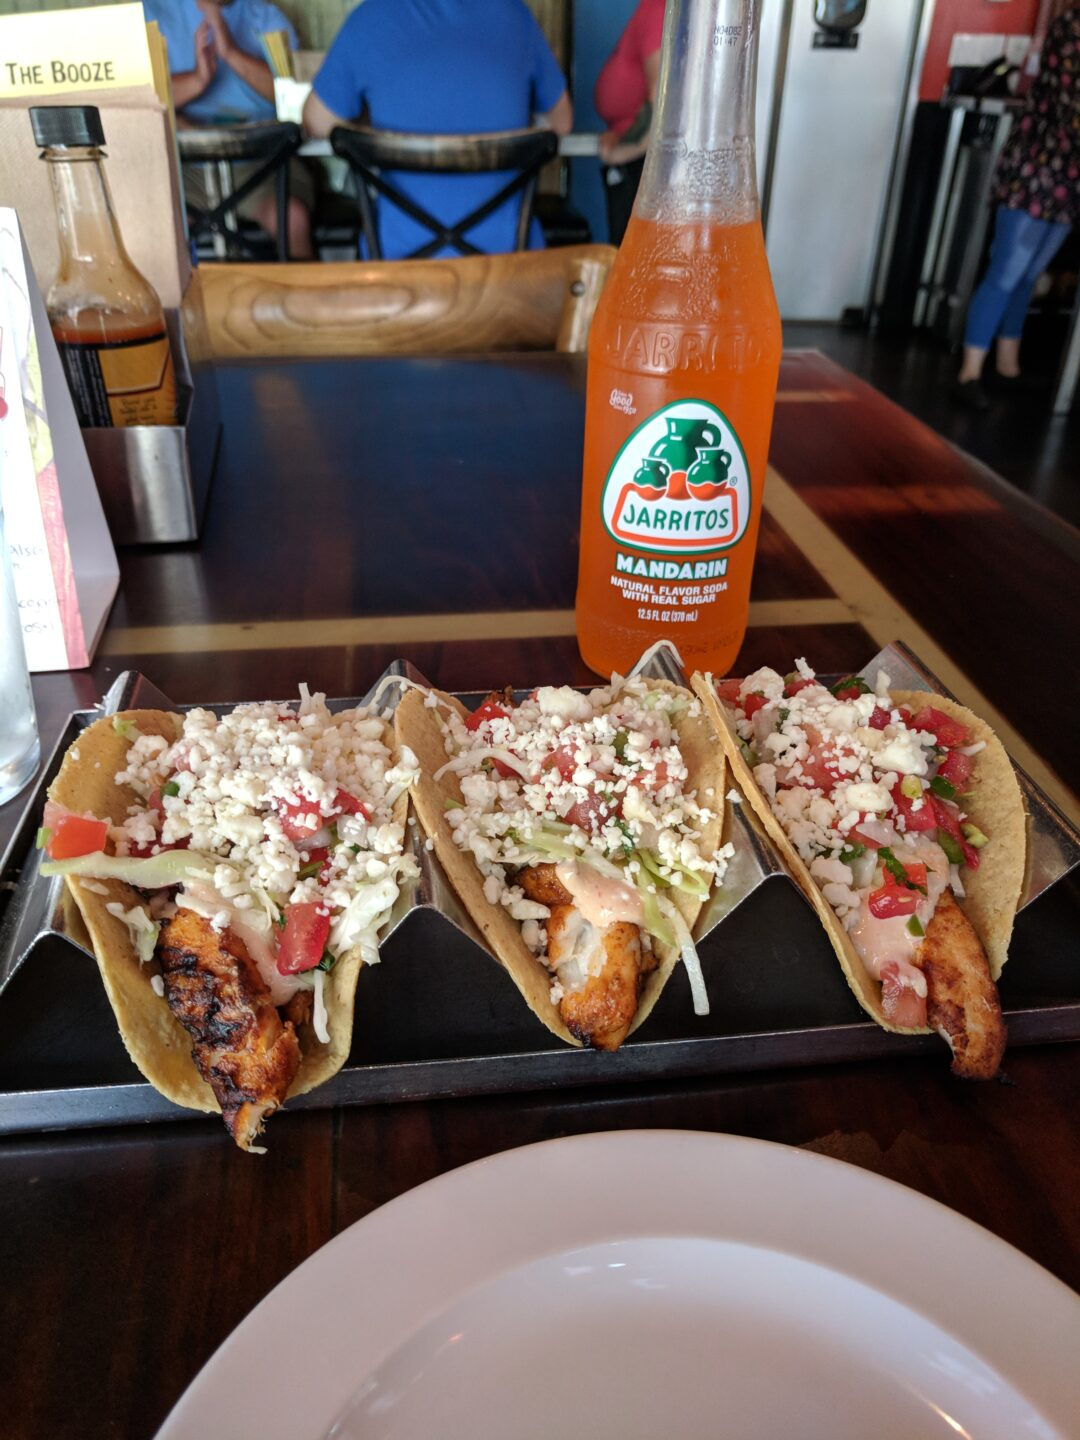 Grilled fish tacos and mandarin Jarritos soda in a bottle.